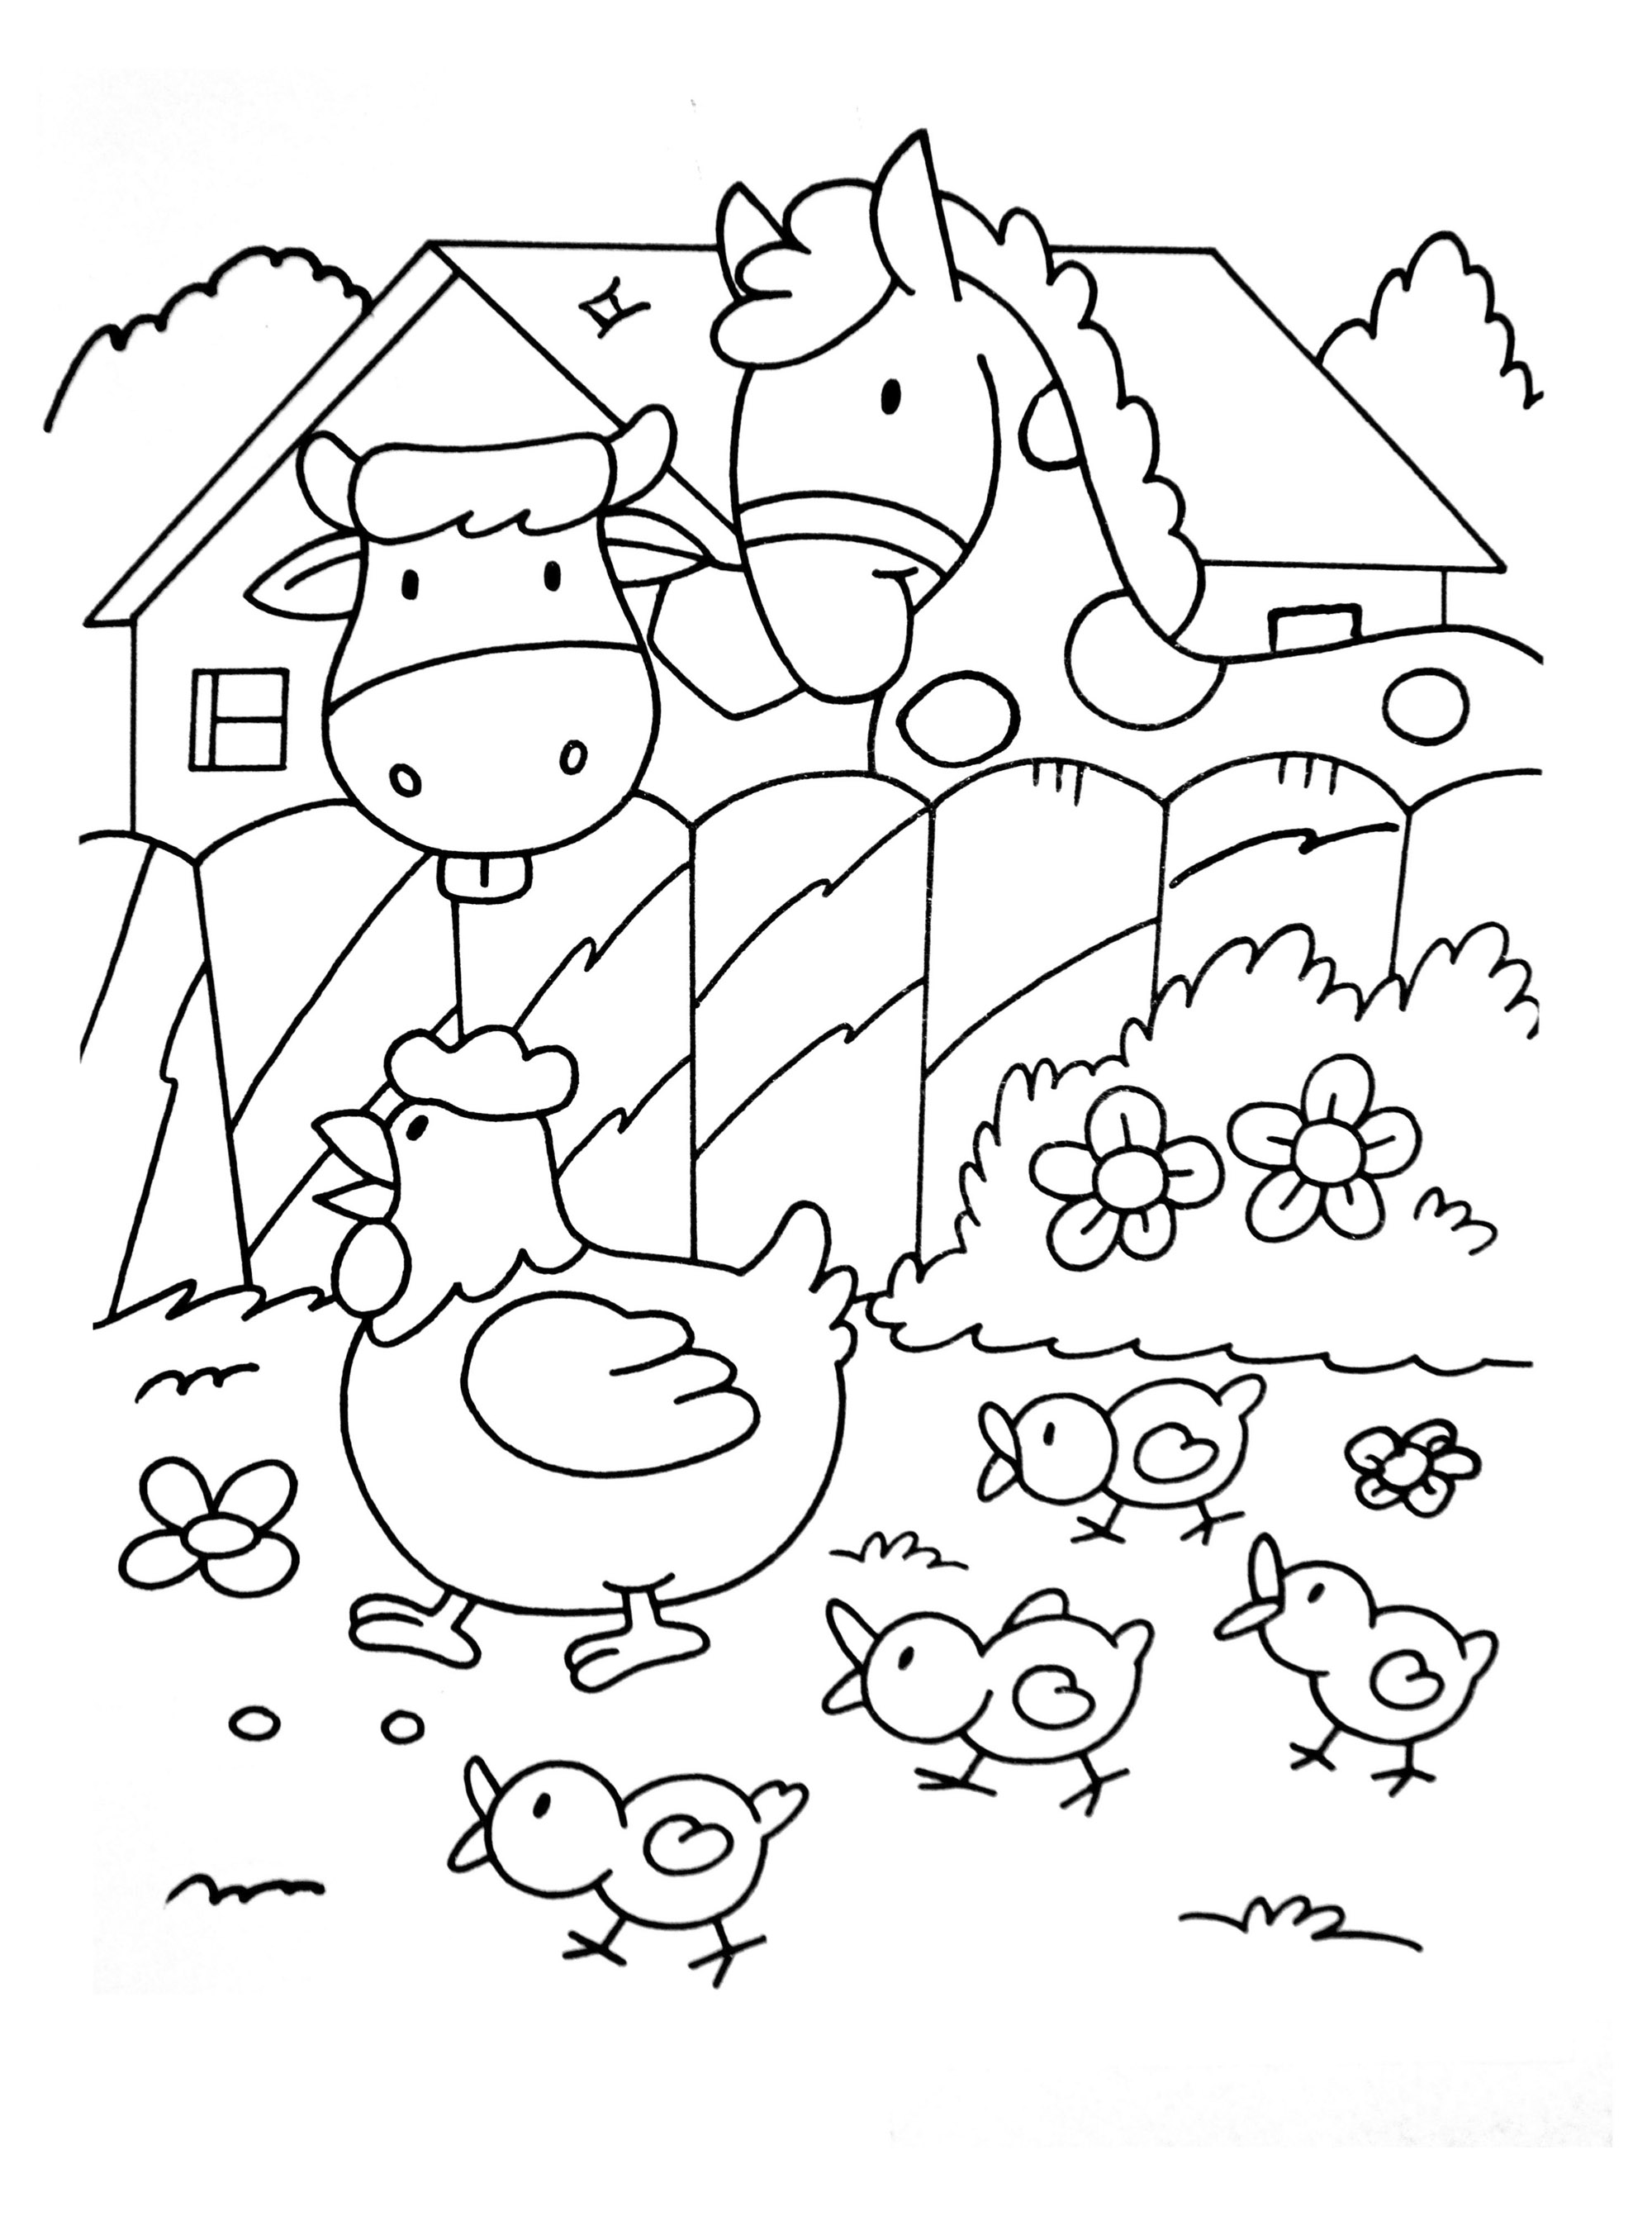 Simple Farm coloring page to download for free